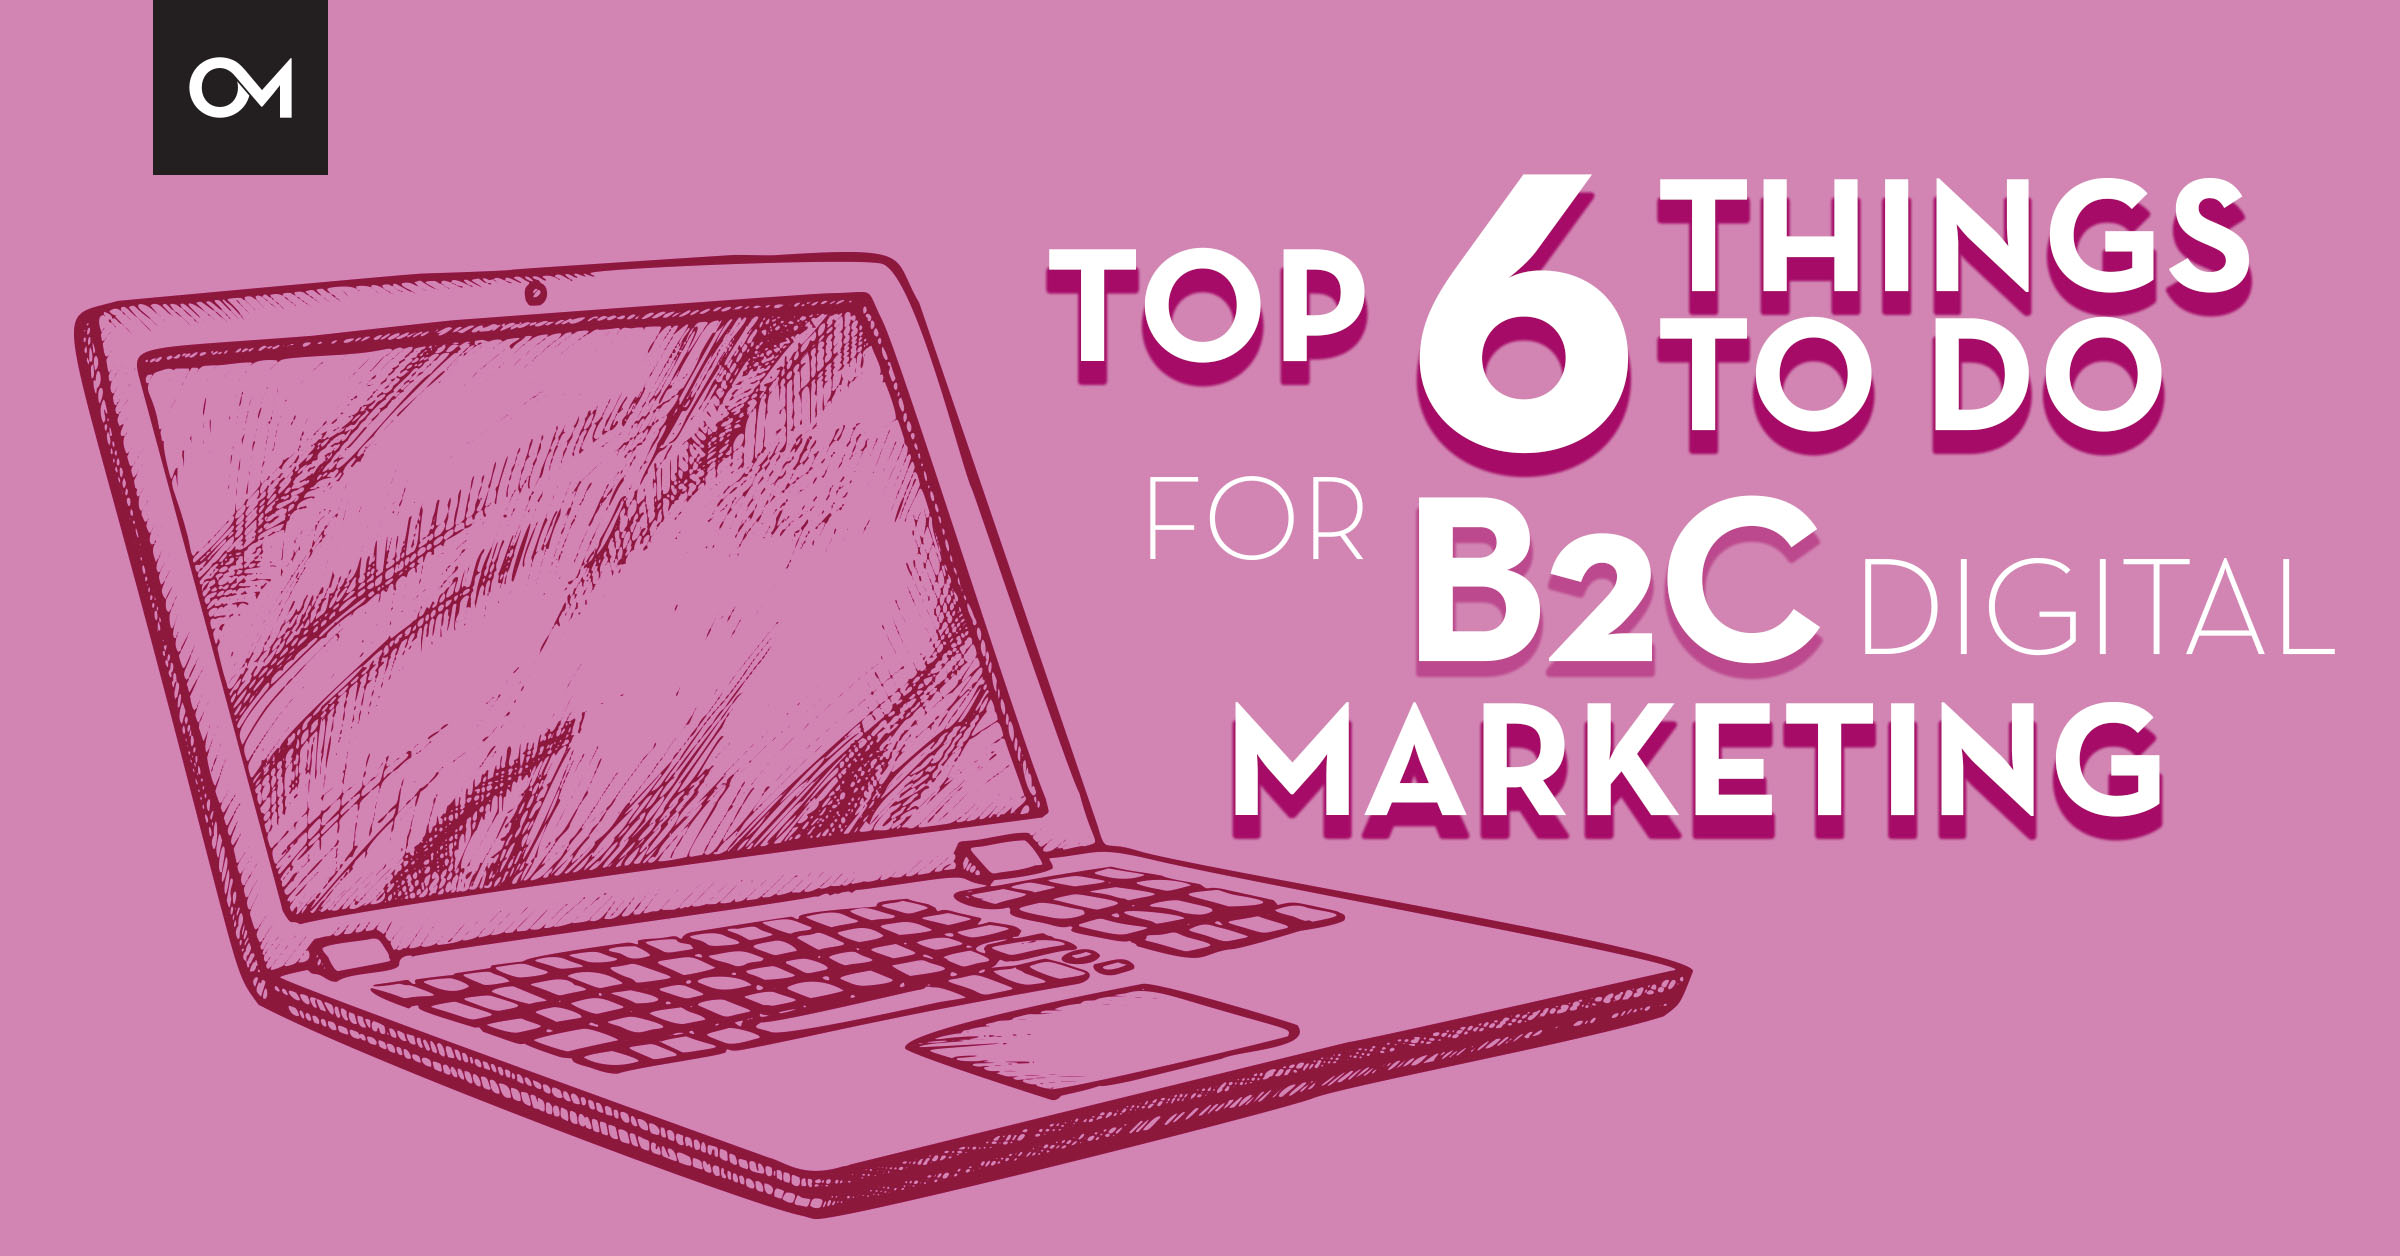 Top 6 things to do for b2c marketing